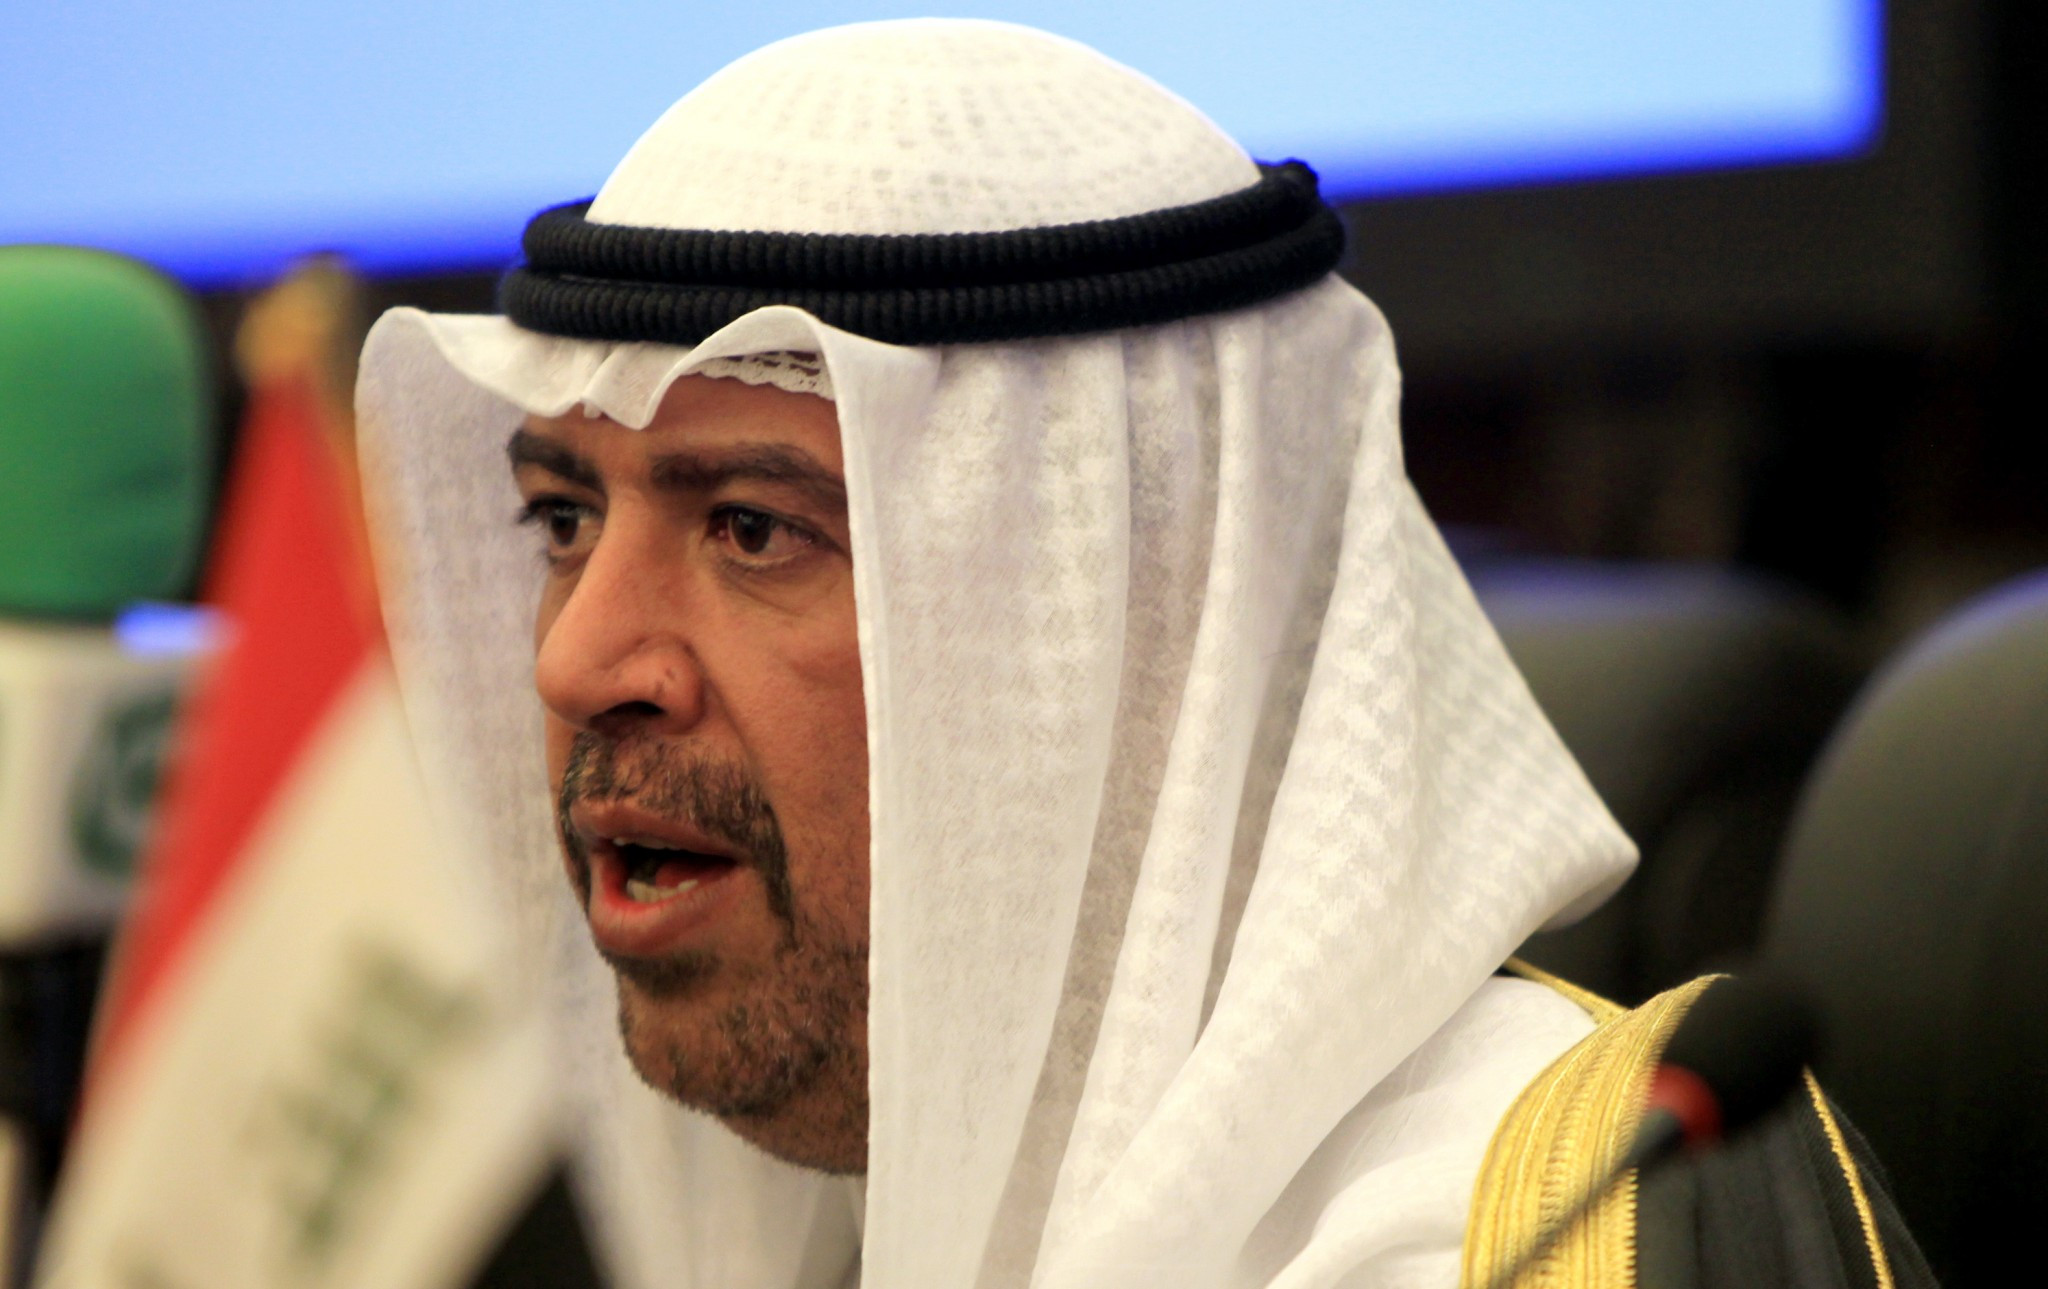 Exclusive: Sheikh Ahmad set to miss IOC Session in Lima to travel to Turkmenistan instead